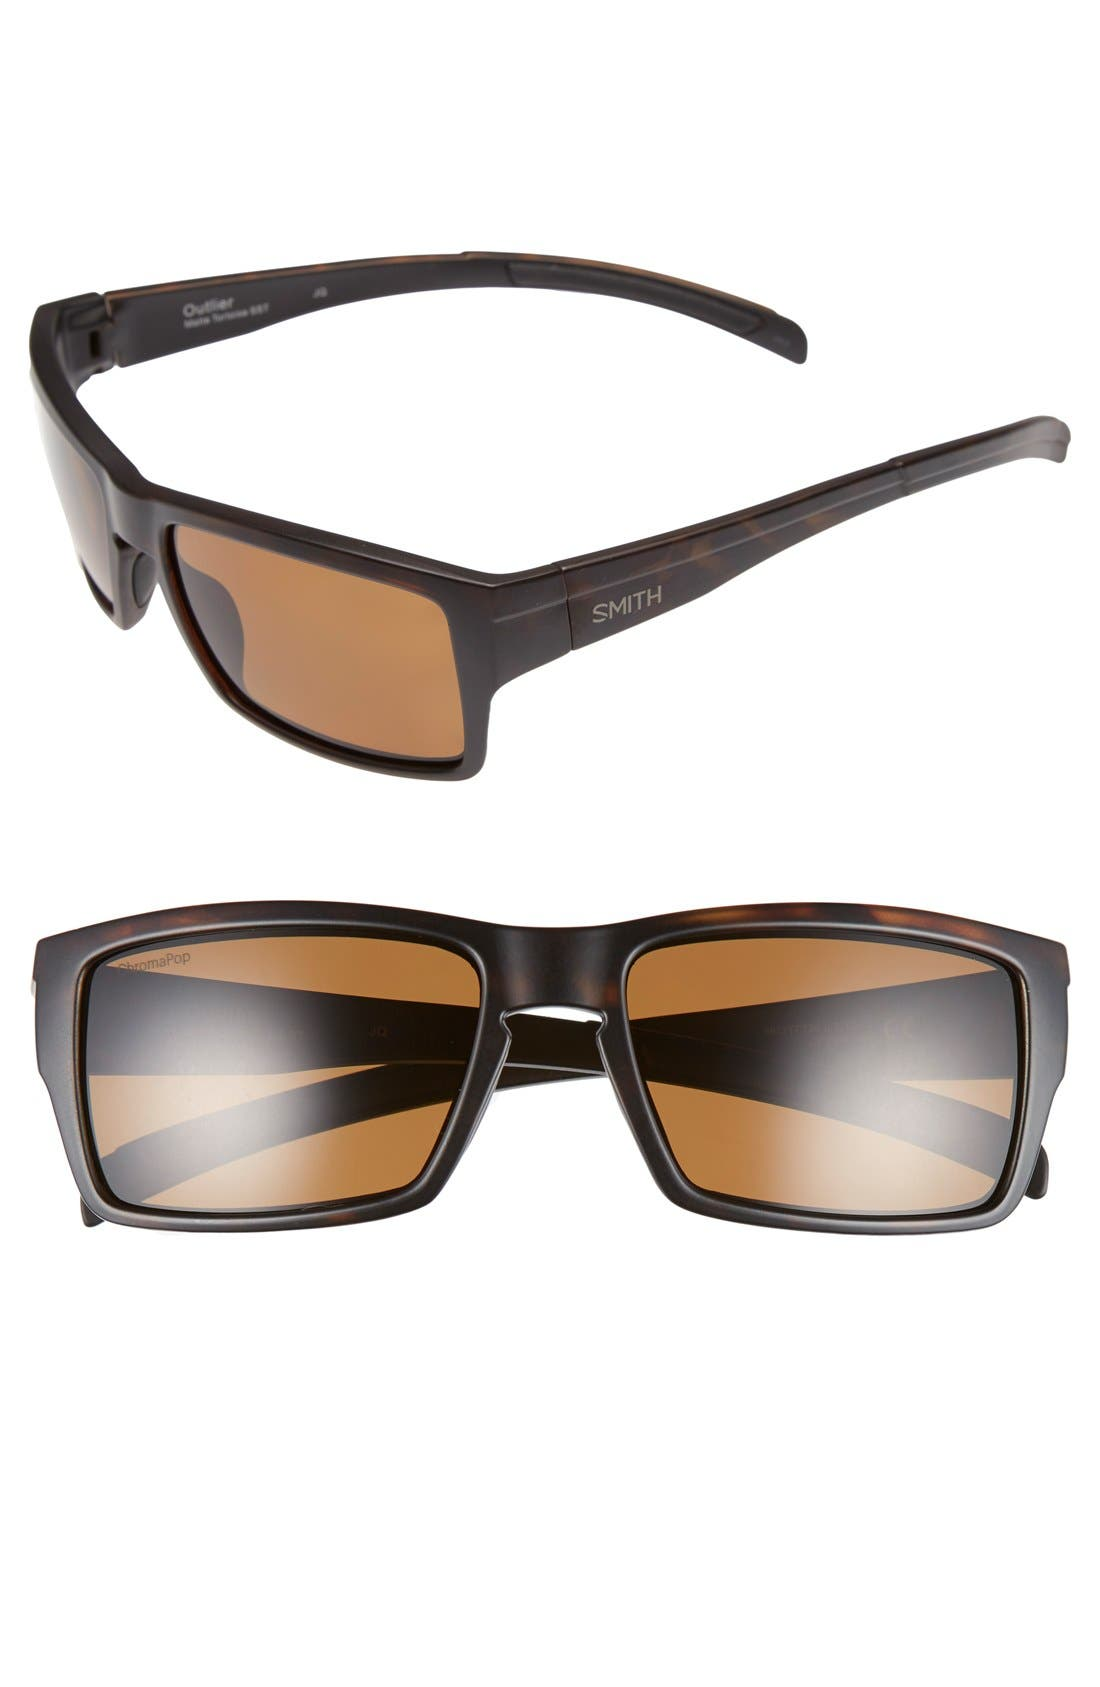 SMITH Outlier 56mm Polarized Sunglasses